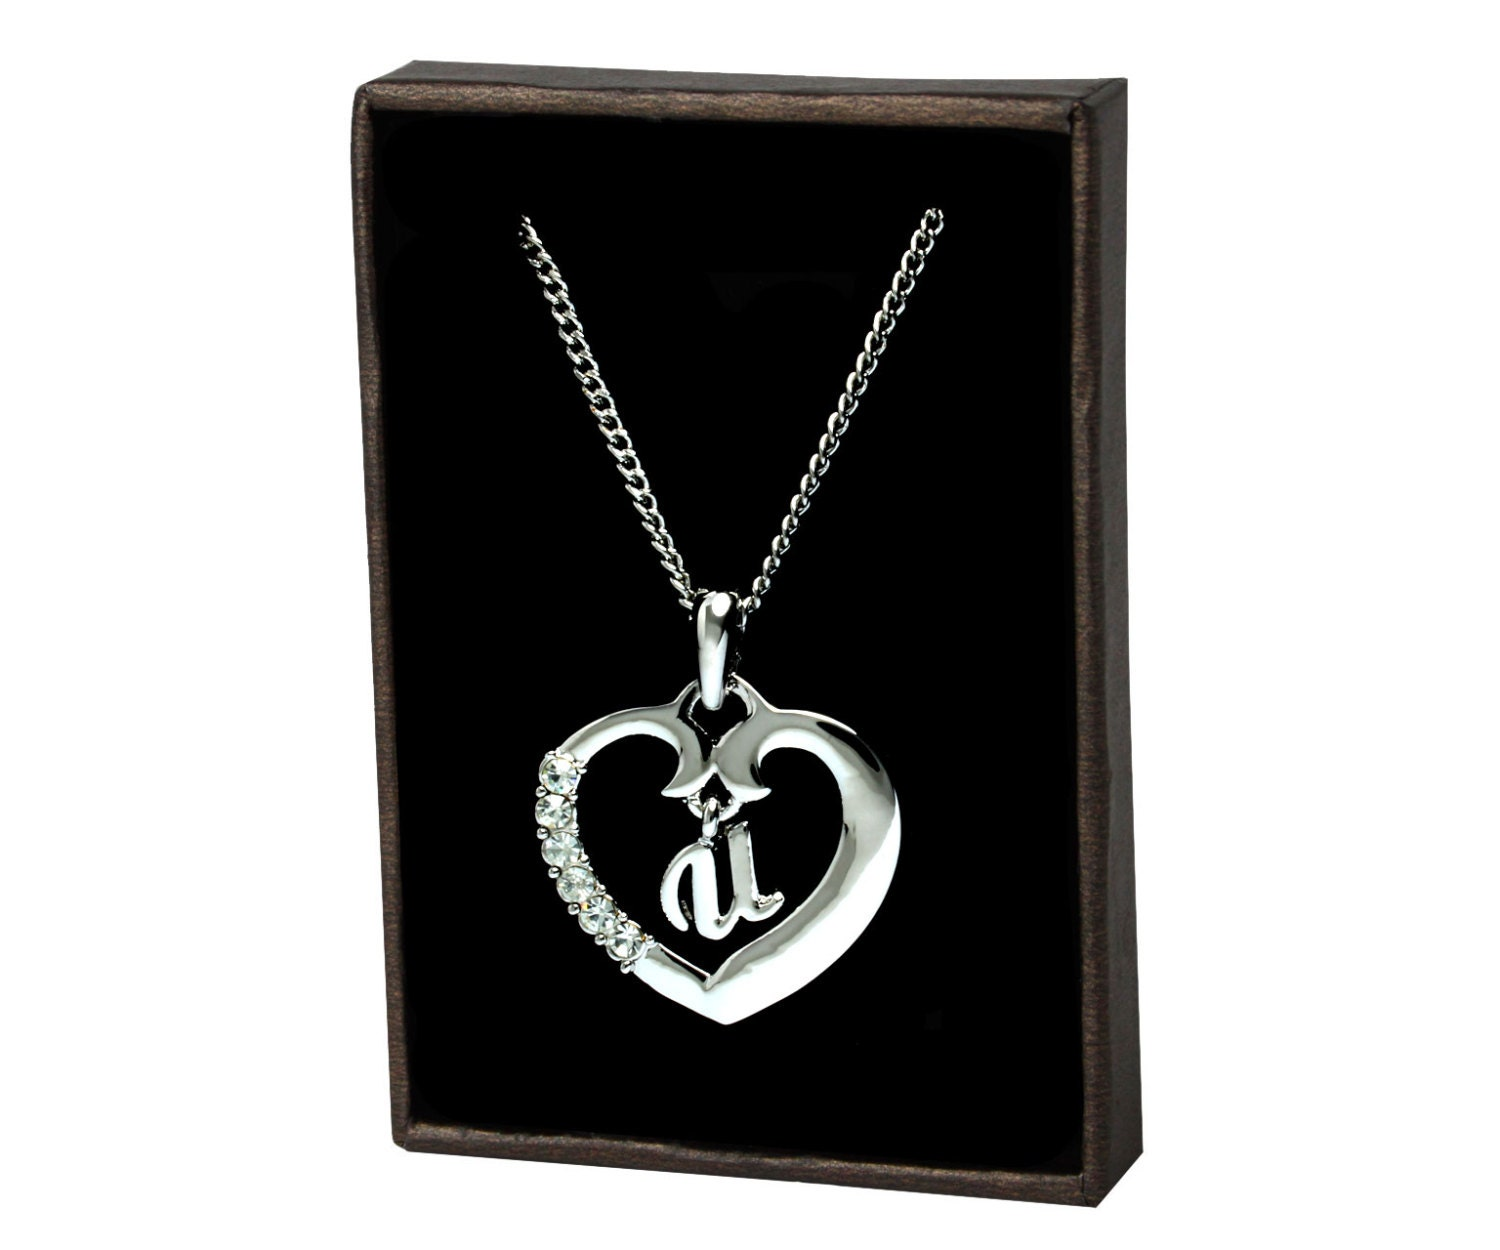 gold heart initial necklace u white gold initial. Black Bedroom Furniture Sets. Home Design Ideas